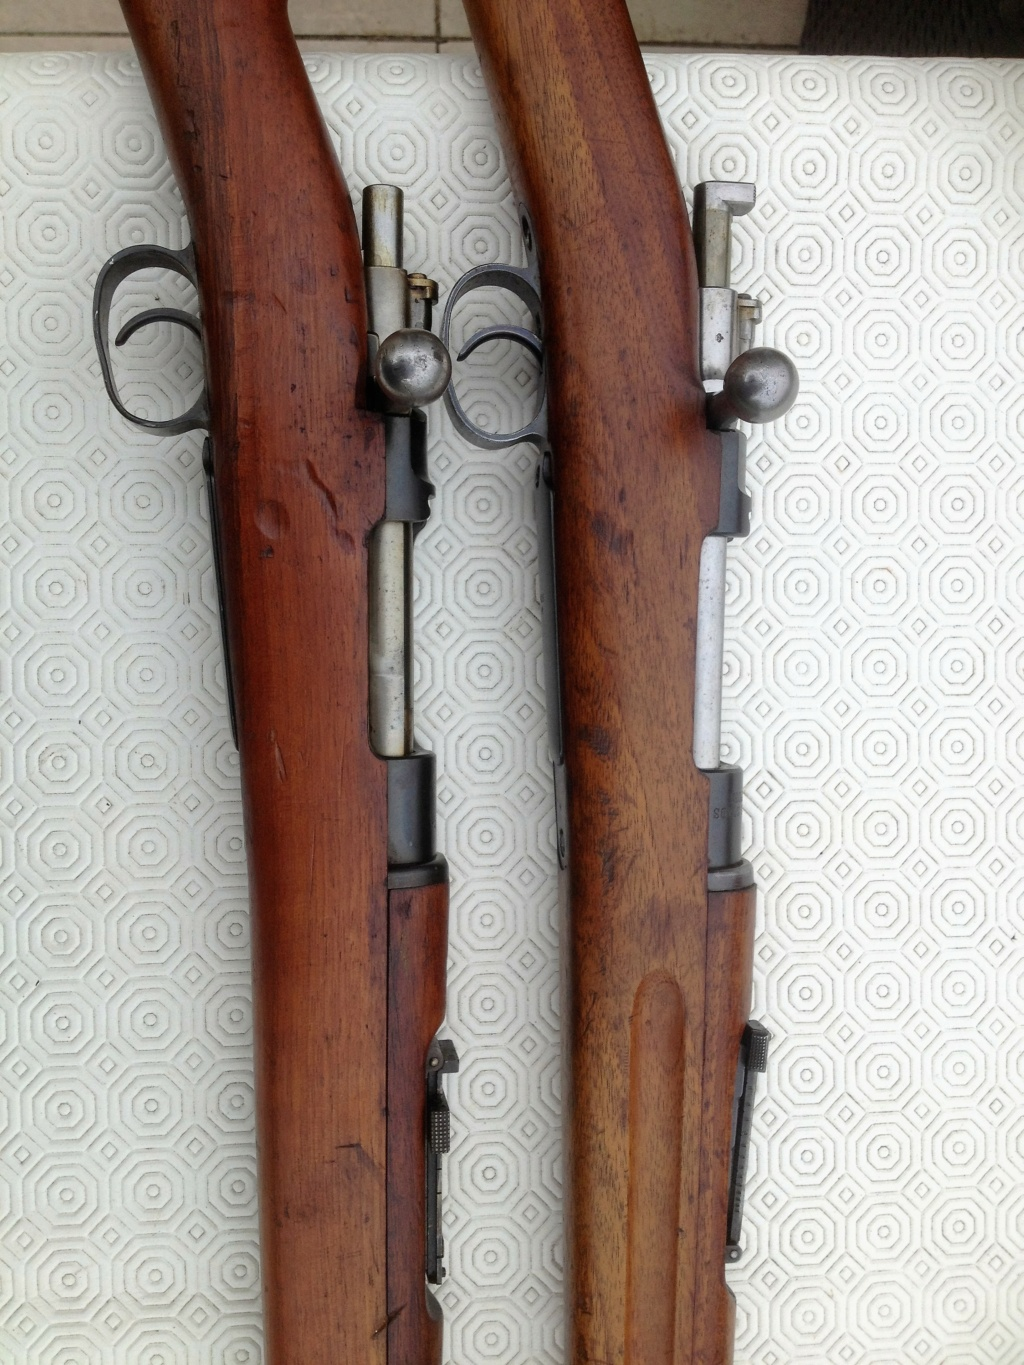 Qui chasse avec une arme ancienne ? Img_0536